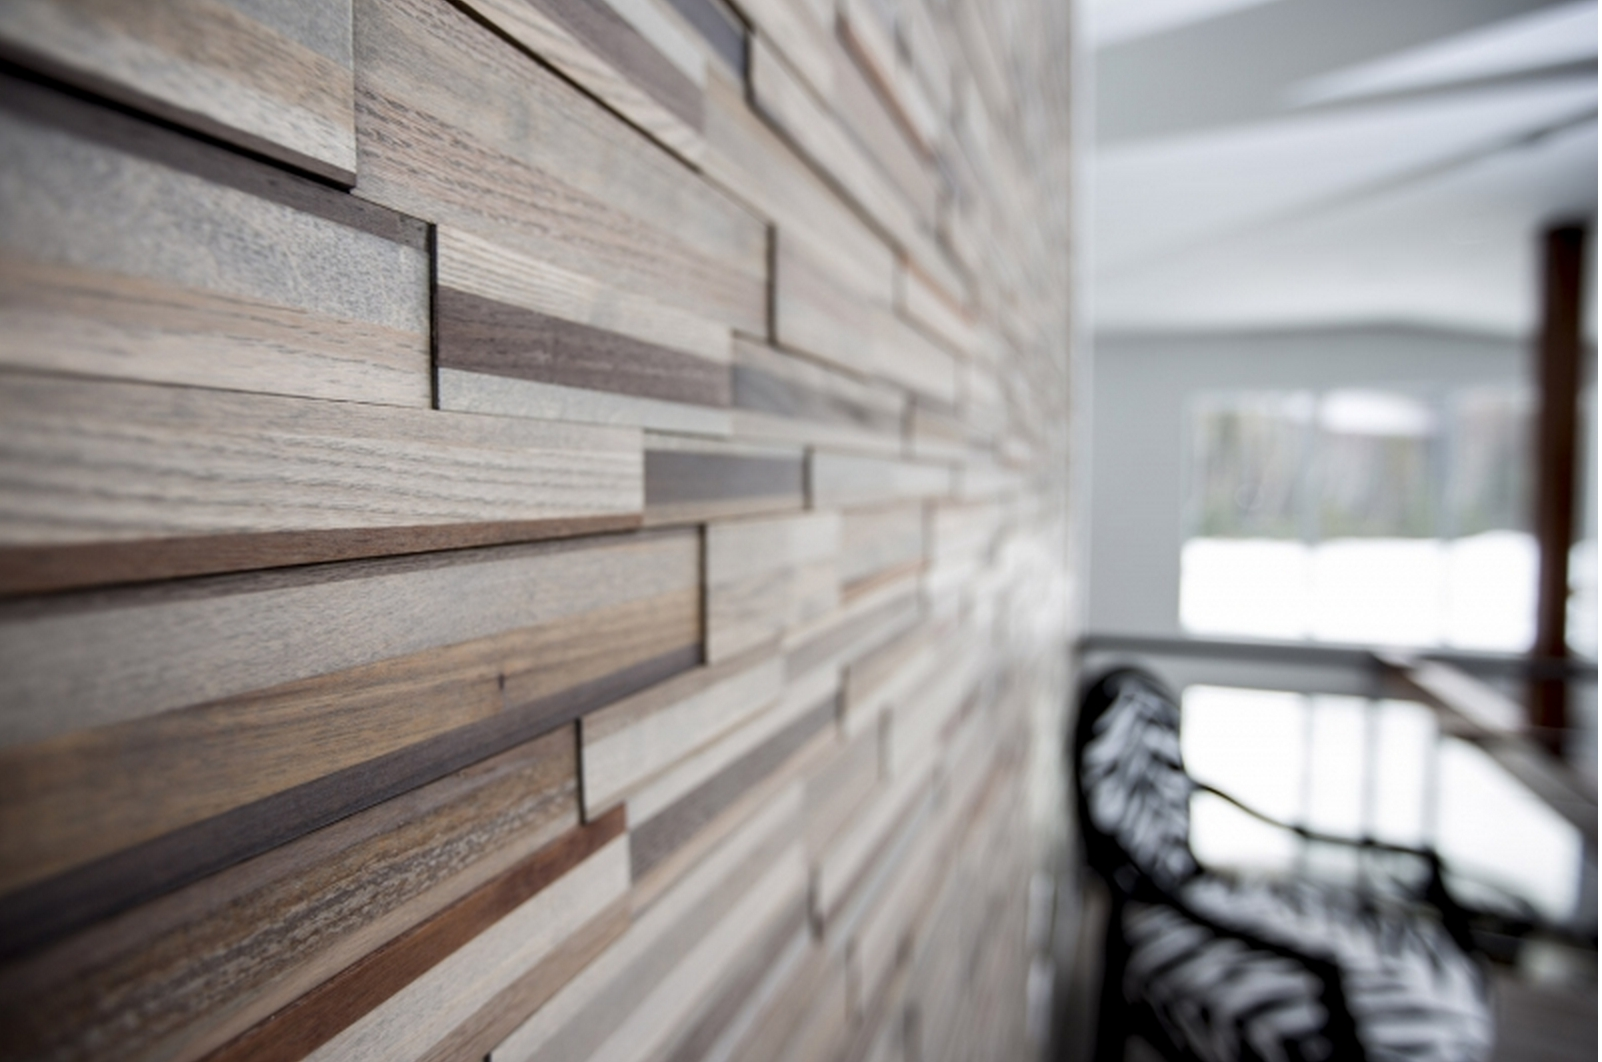 Add A Warm, Contemporary Look To Any Room With Easy Diy Multi With 2017 Wood Paneling Wall Accents (View 3 of 15)